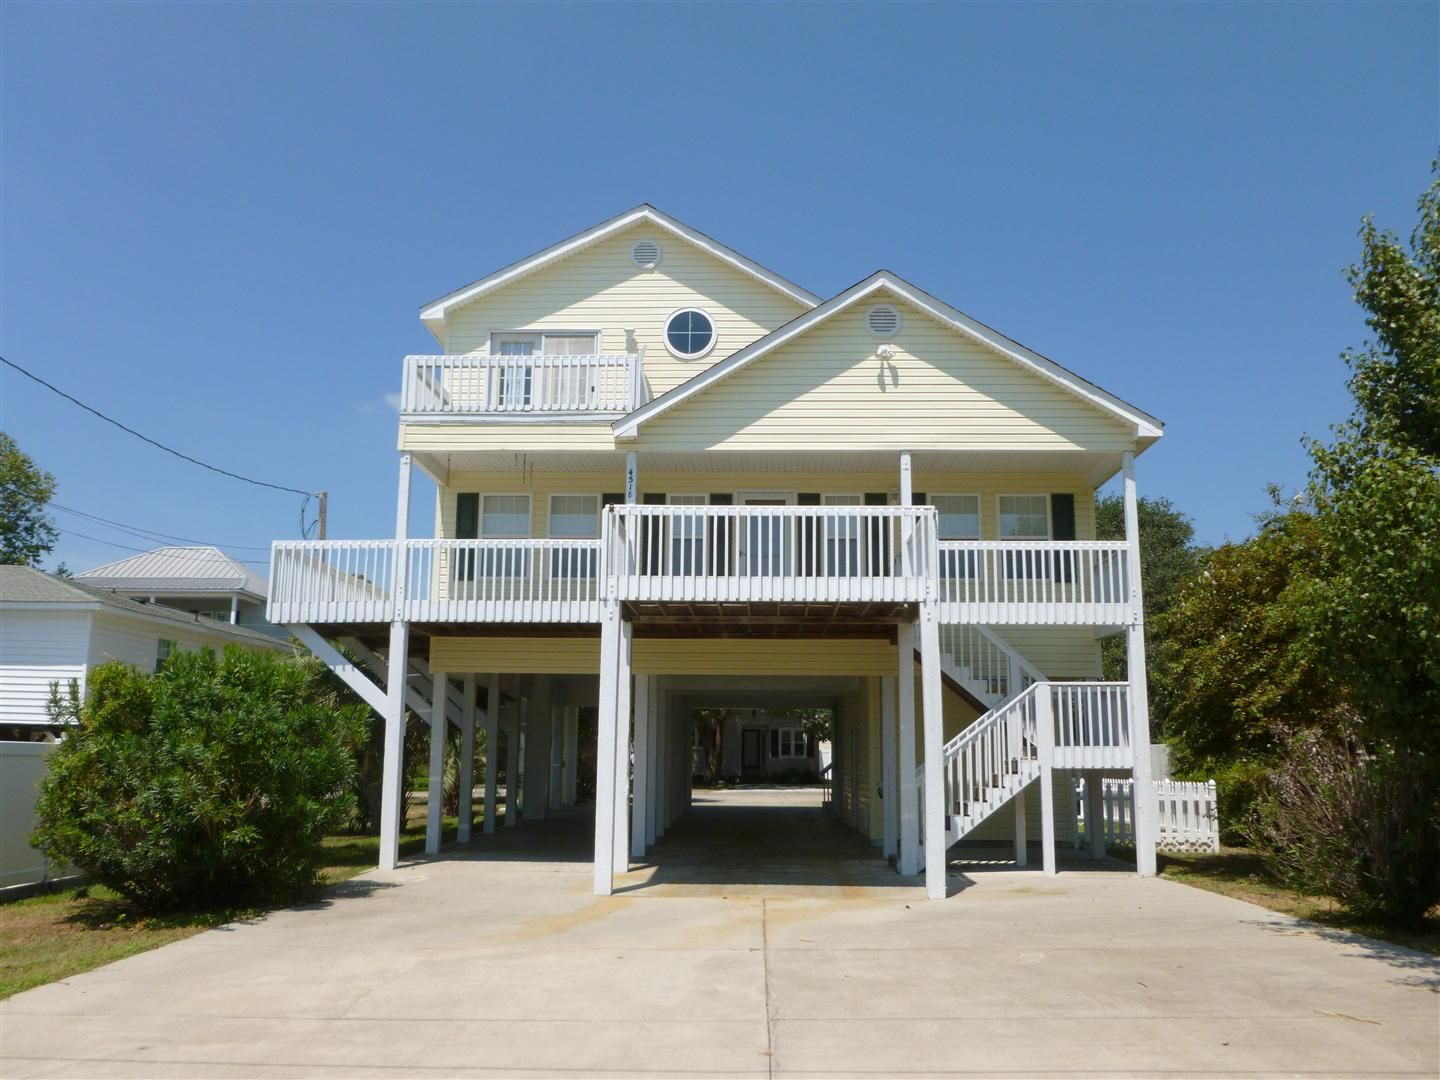 The surf house v north myrtle beach condo rental for Small beach homes